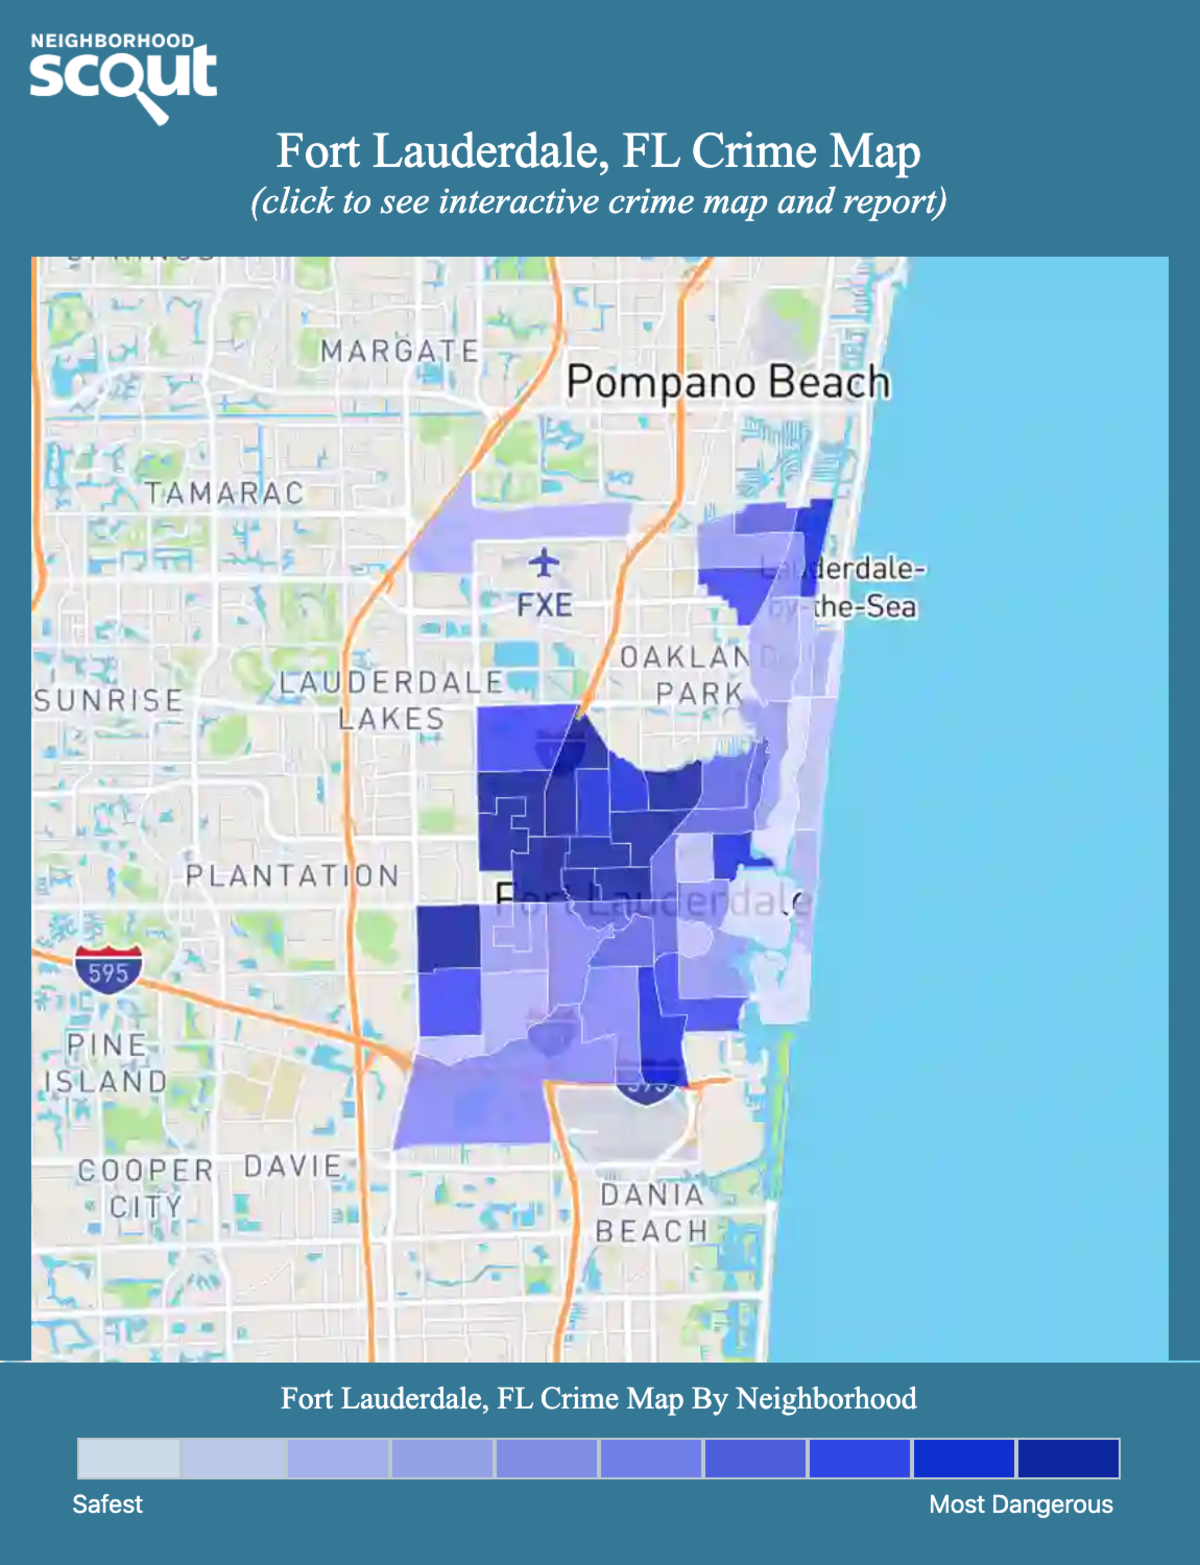 Fort Lauderdale, Florida crime map